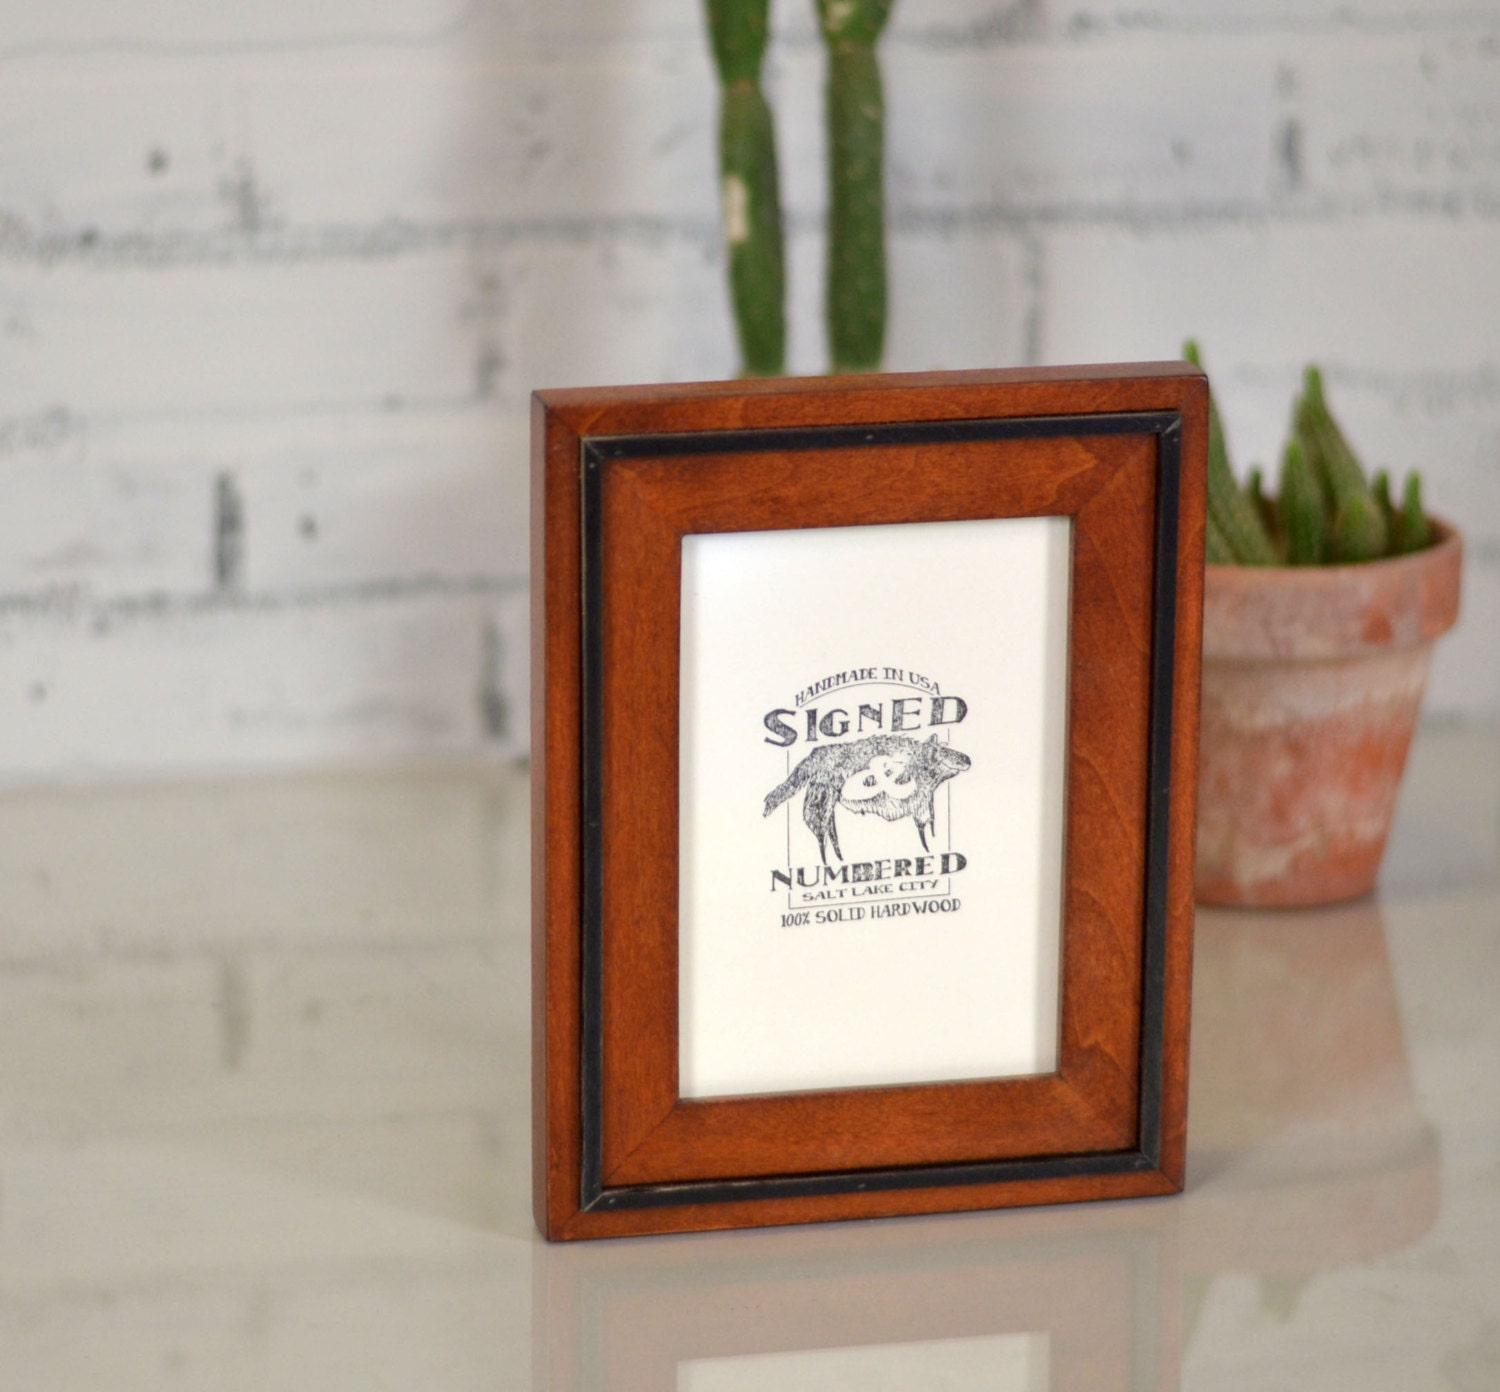 5x7 Picture Frame In Solid Wood Tone Finish With Solid Black